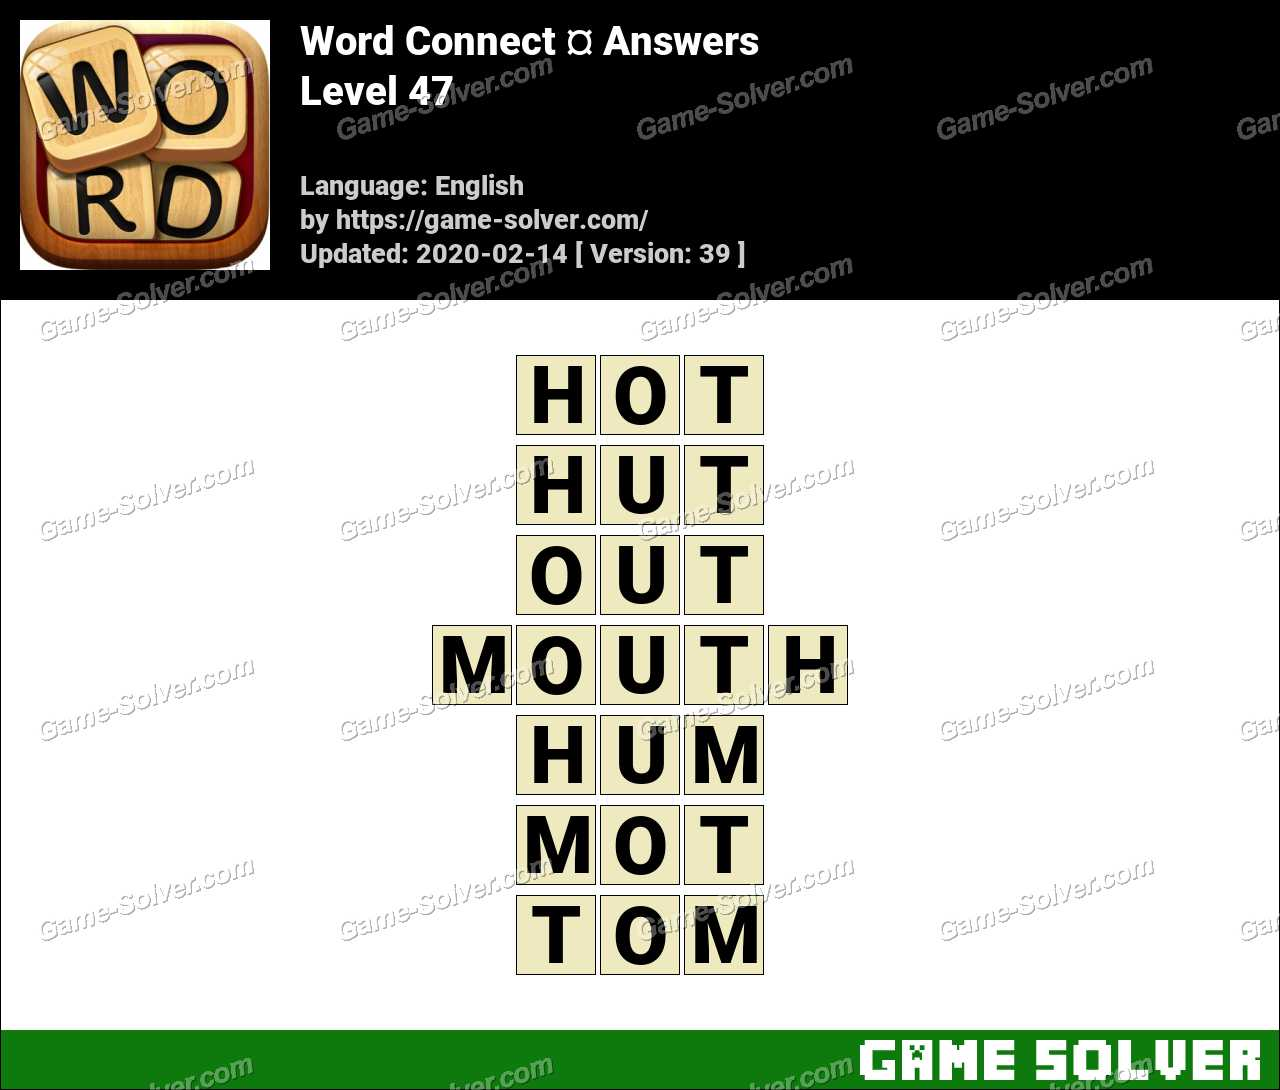 Word Connect Level 47 Answers